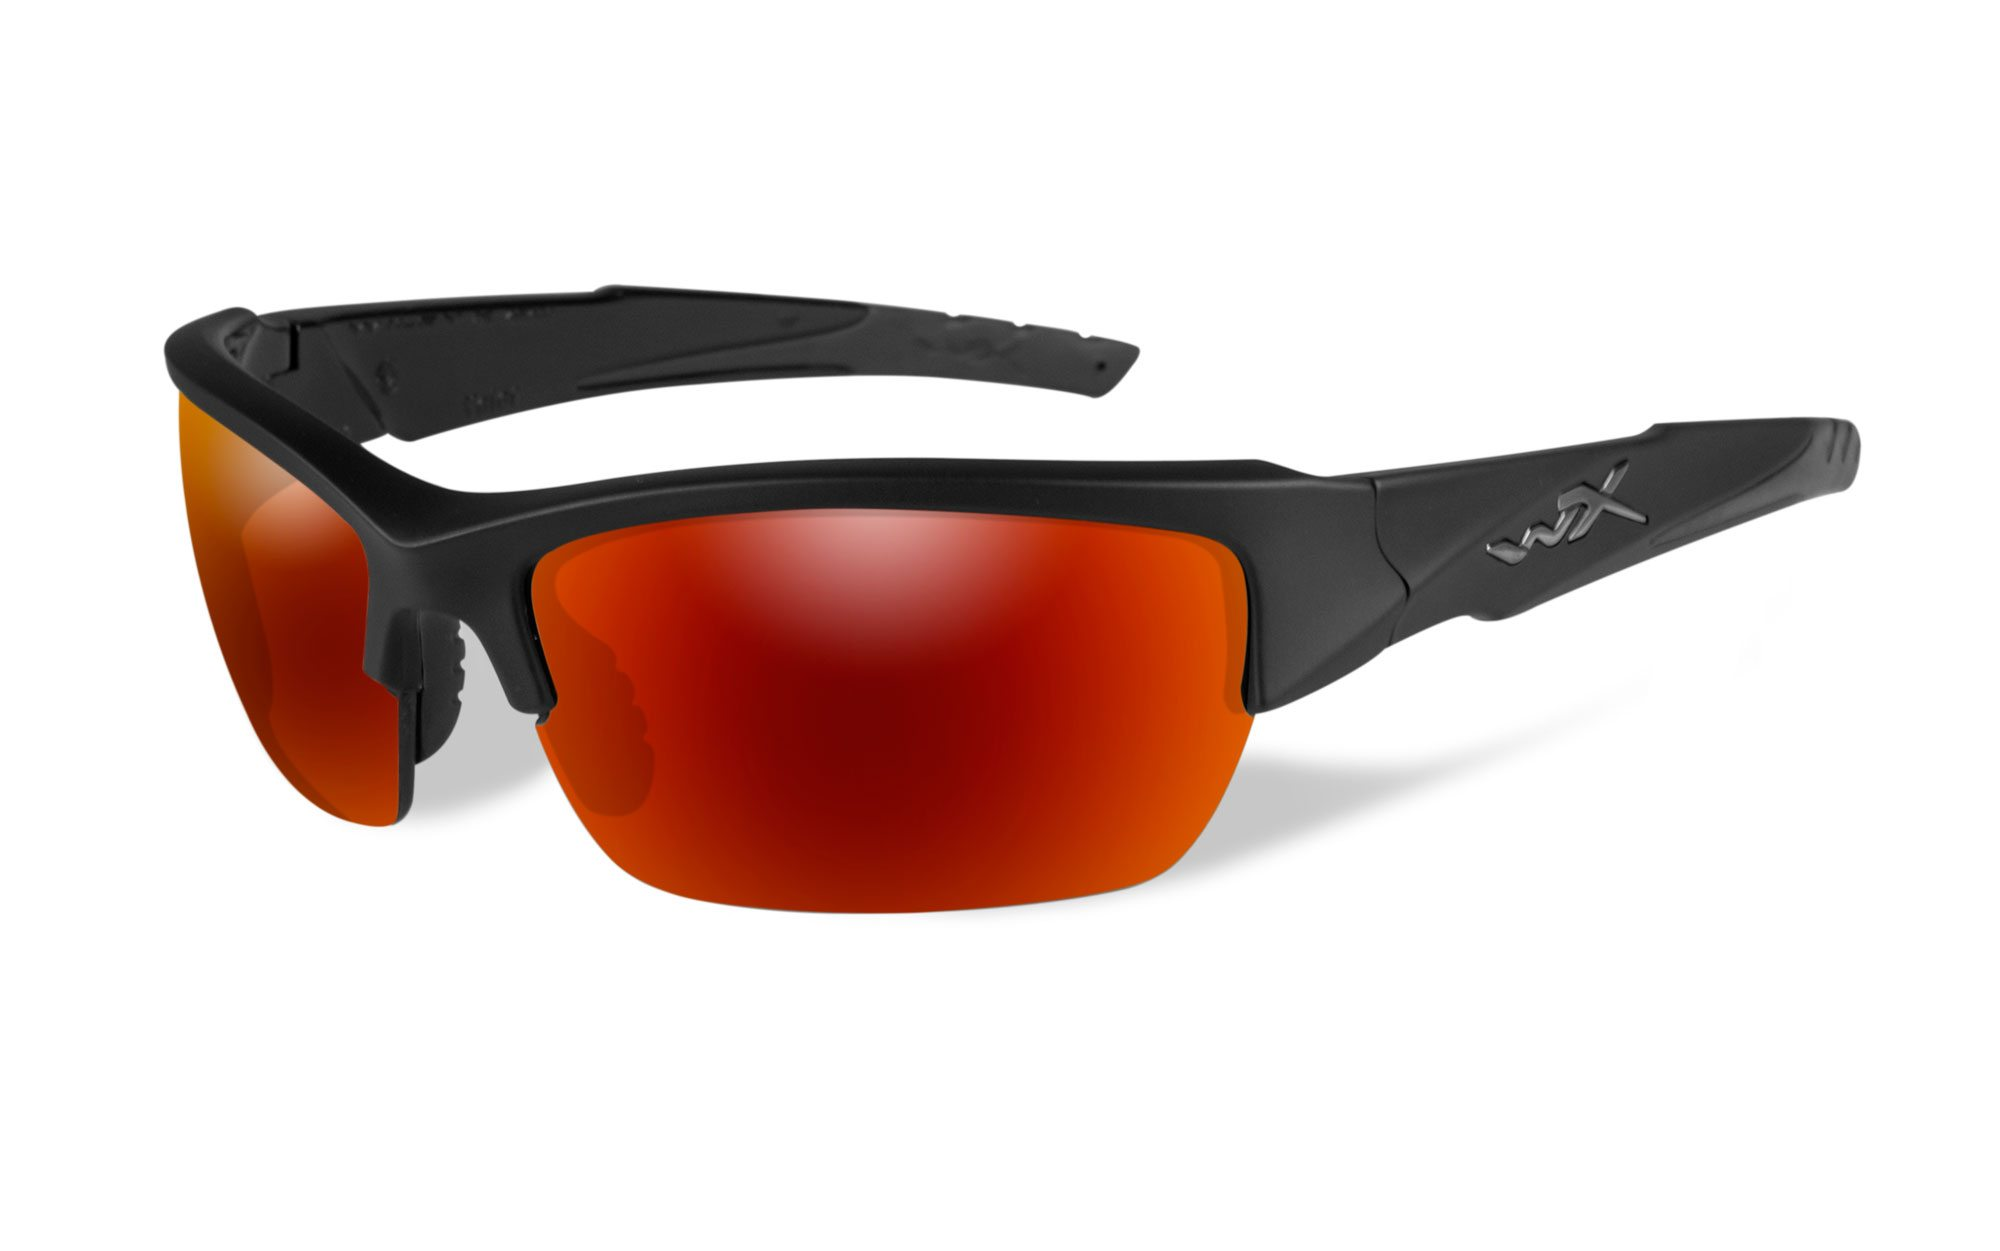 WileyX Valor | ANSI Rated and OSHA Approved Prescription Sunglasses